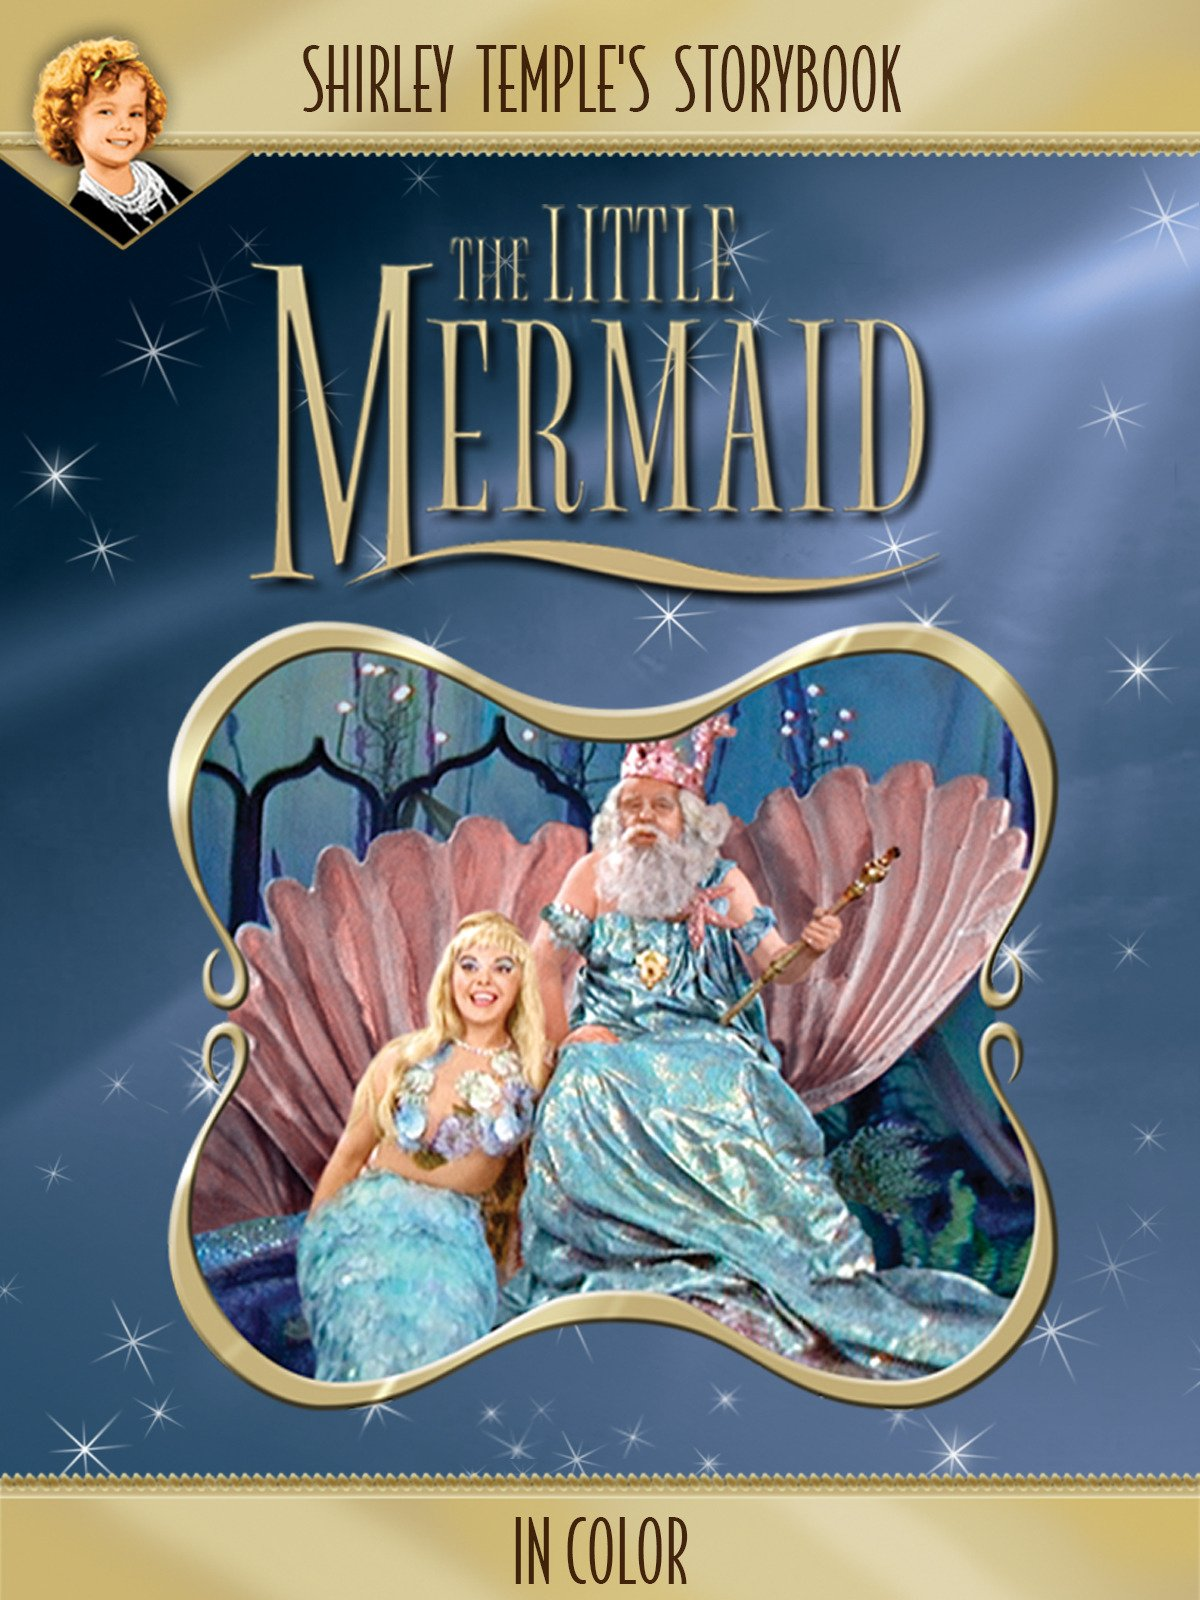 Shirley Temple's Storybook: The Little Mermaid (in Color)